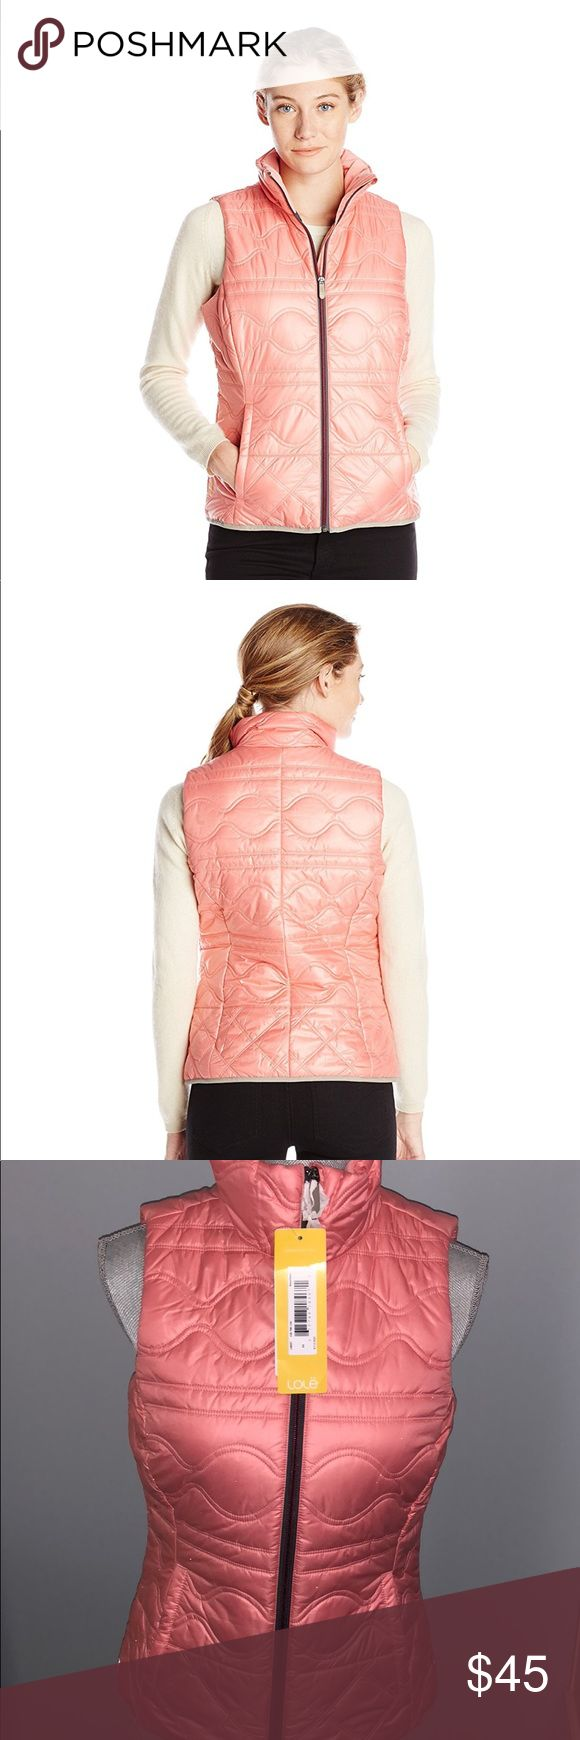 "NEW Lole Icy Puffer Vest New with tags. LOLE ""Icy 2"" puffer Vest. Water repellent and wind proof with synthetic fill. Women's size extra small in ""pink lush"" salmon pink. Lole Jackets & Coats Vests"